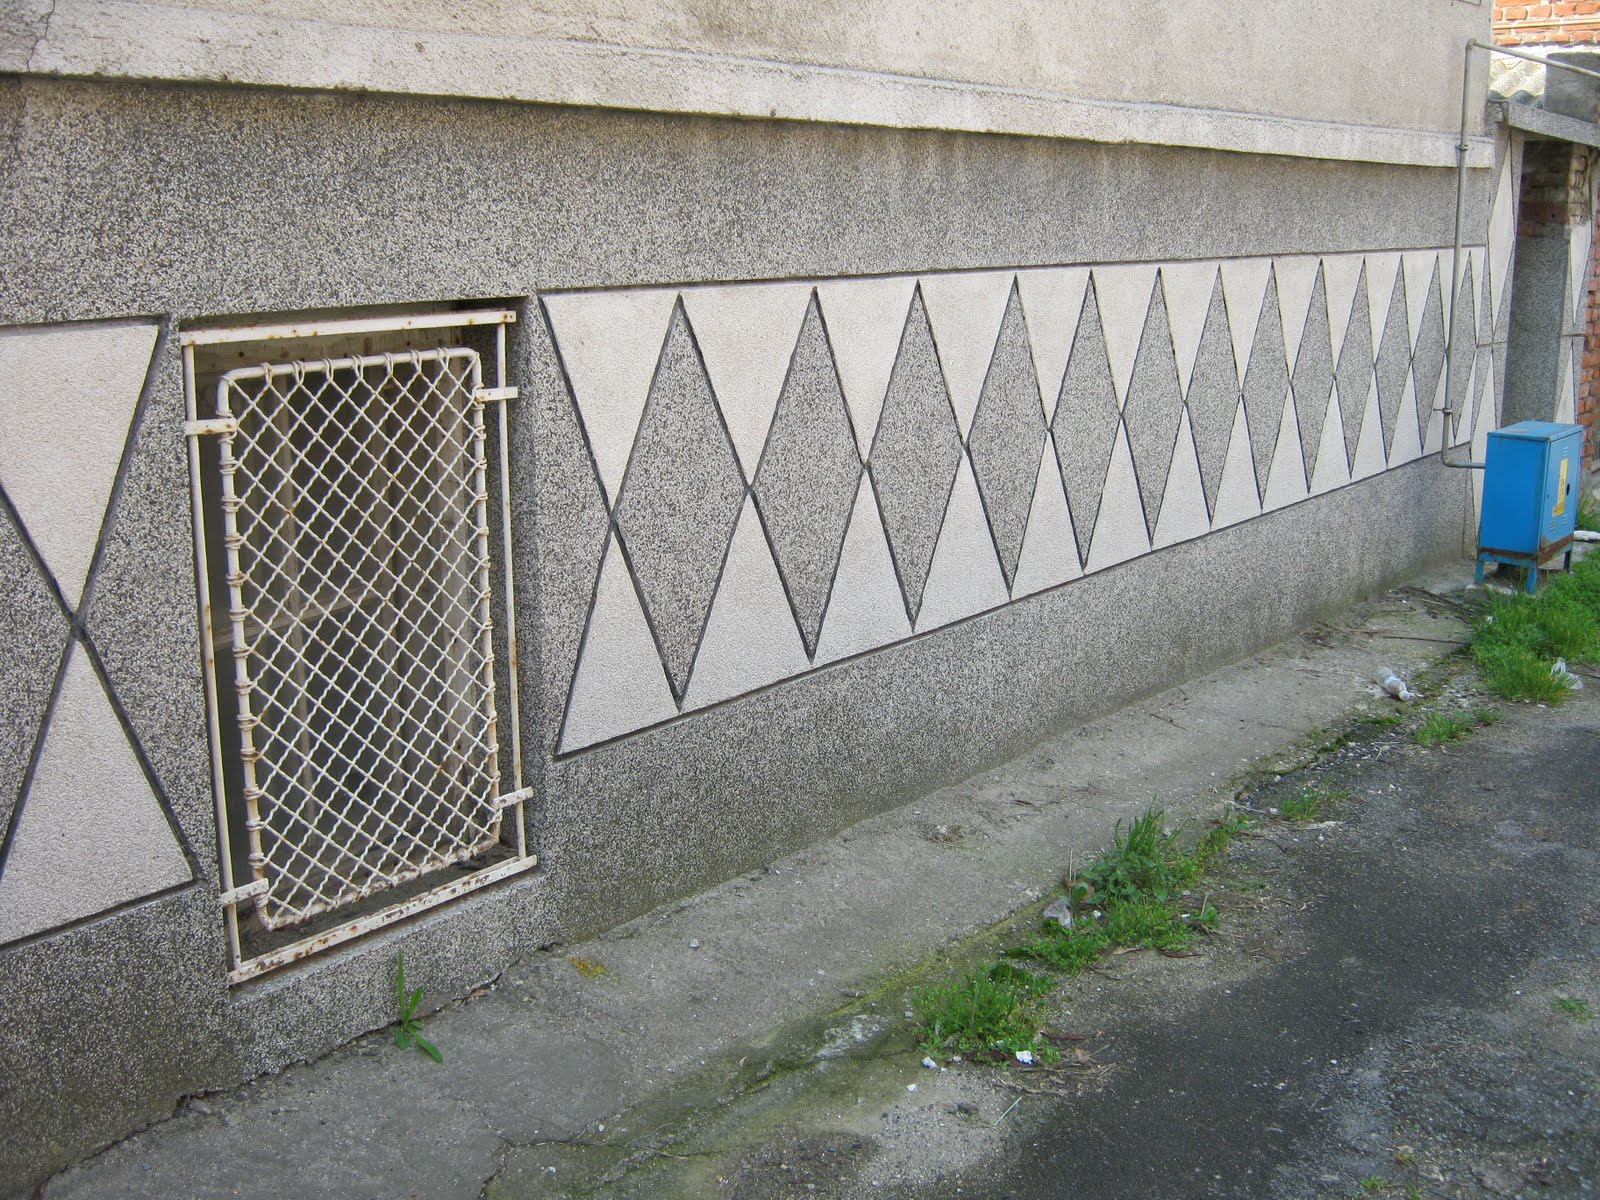 Simple Boundary Wall Design : Yambol daily picture april